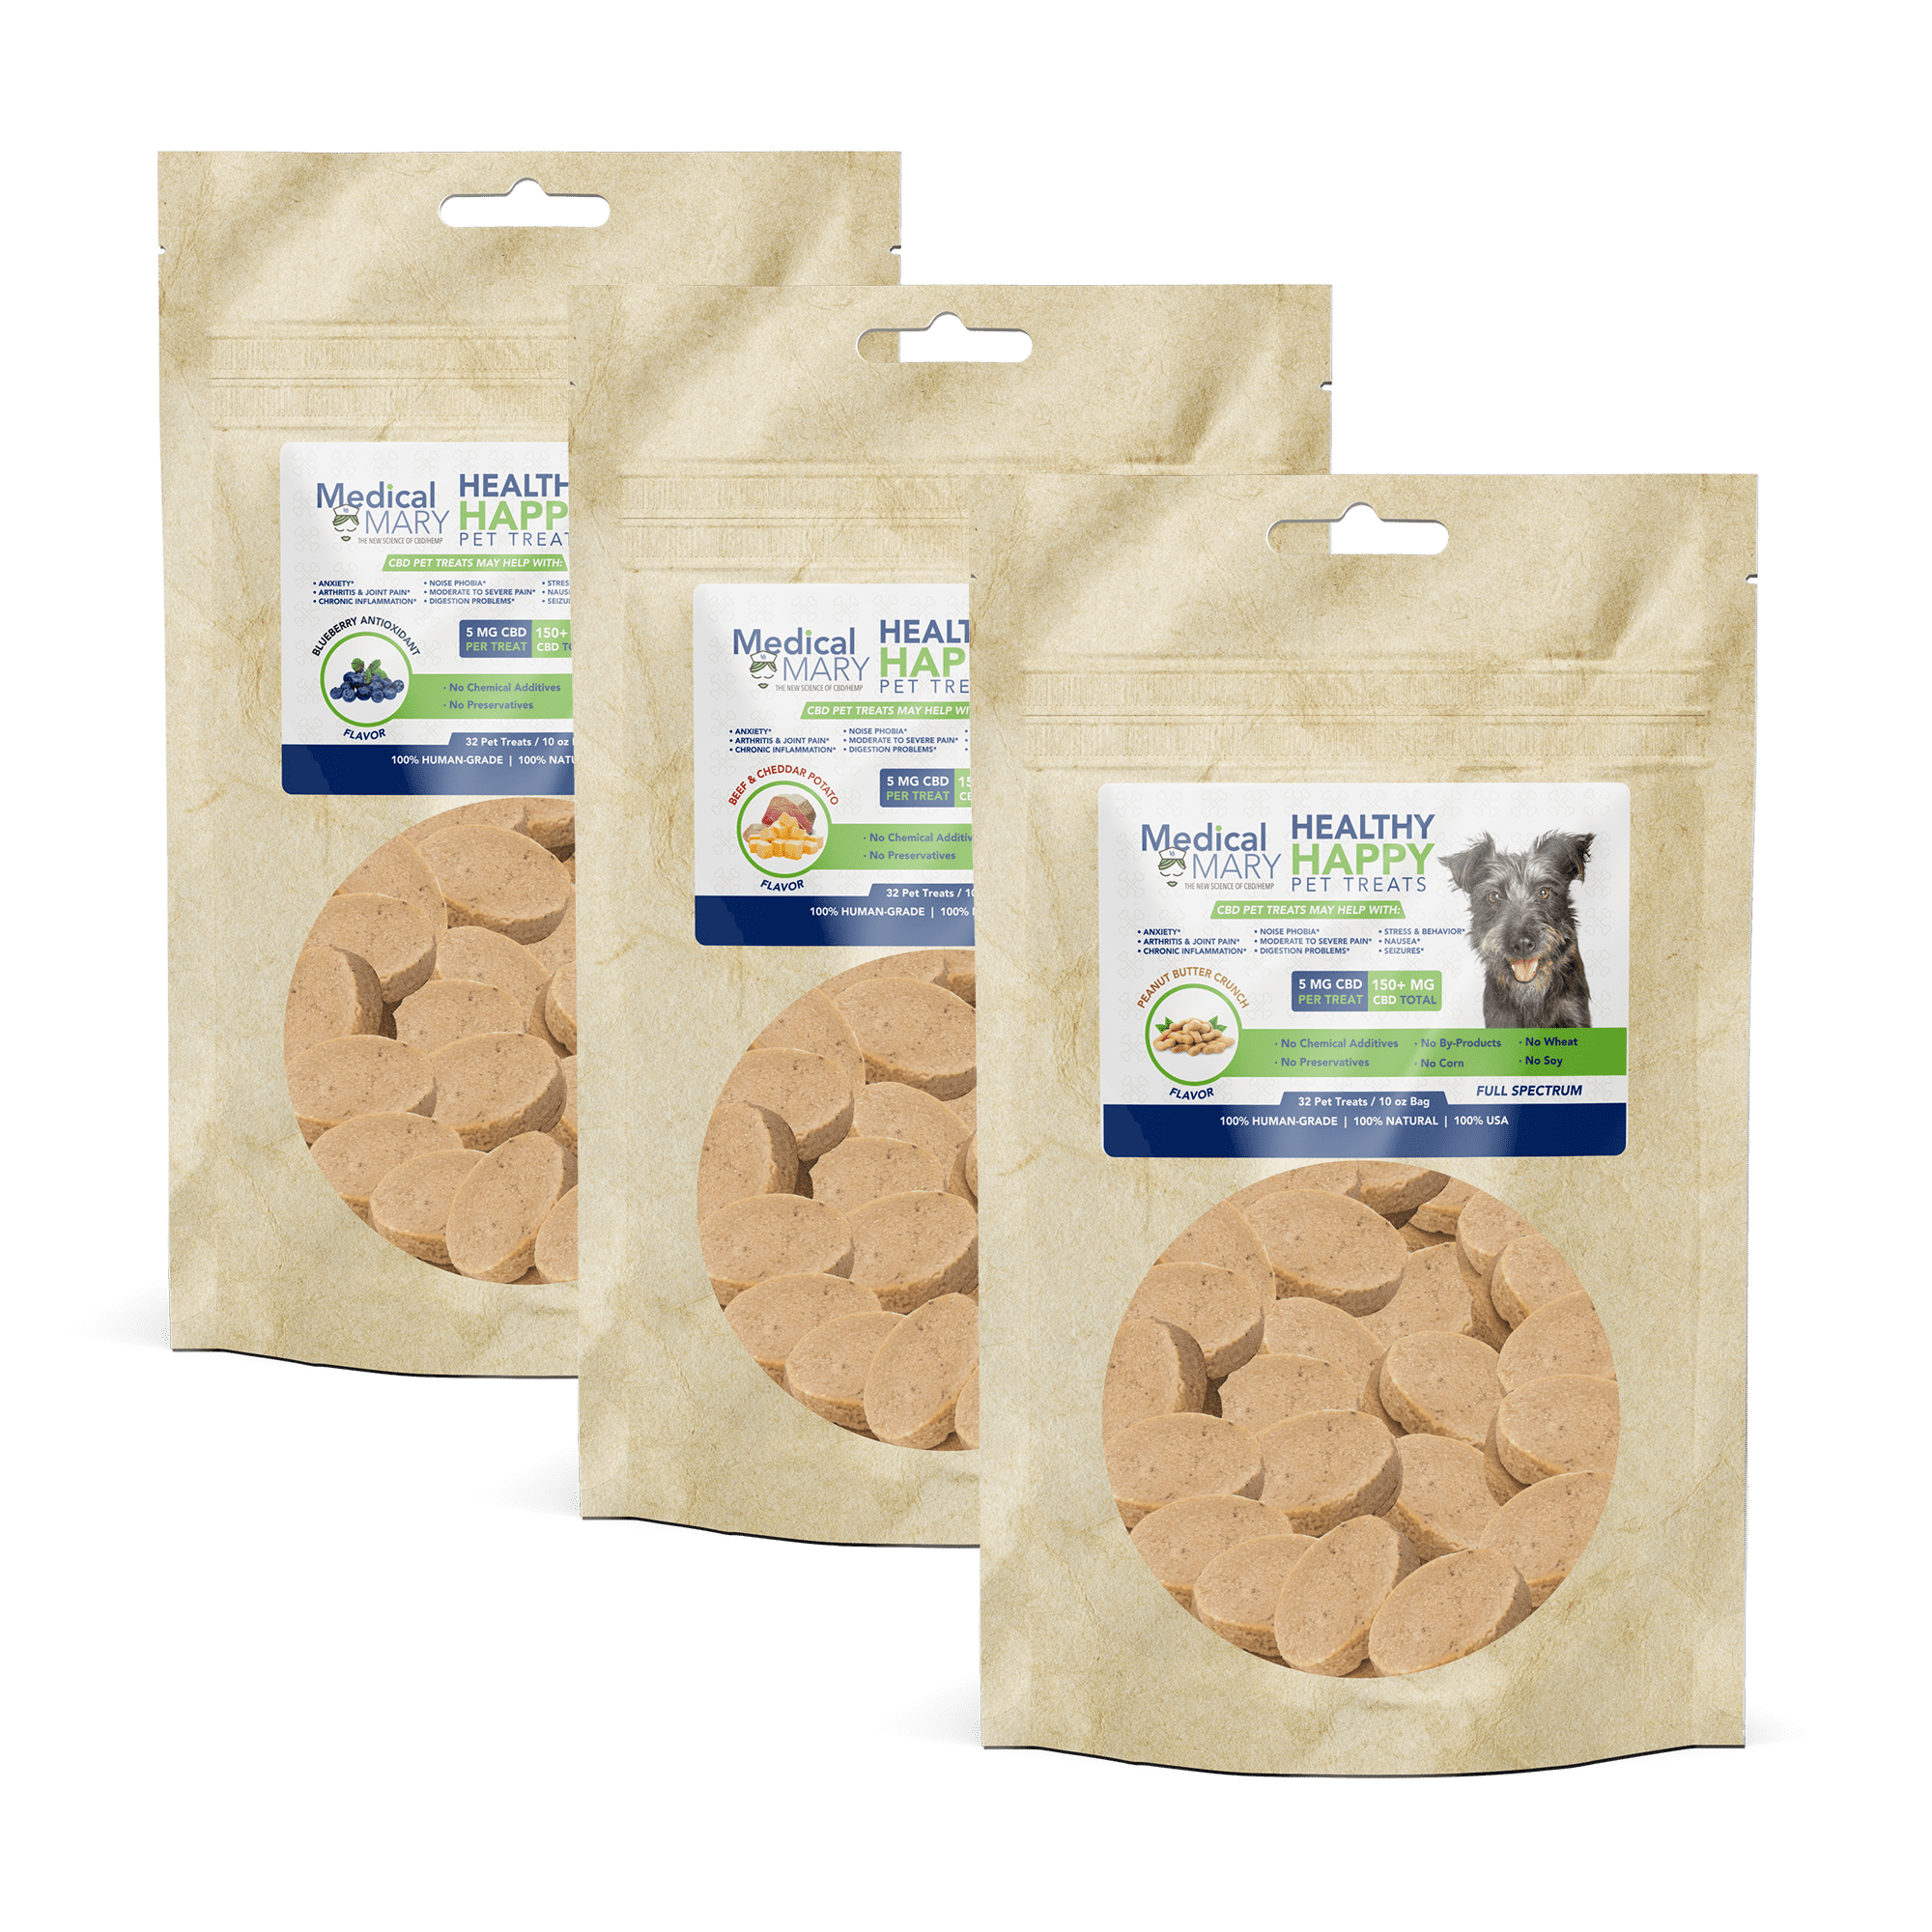 wholesale cbd products | cbd dog treats near me